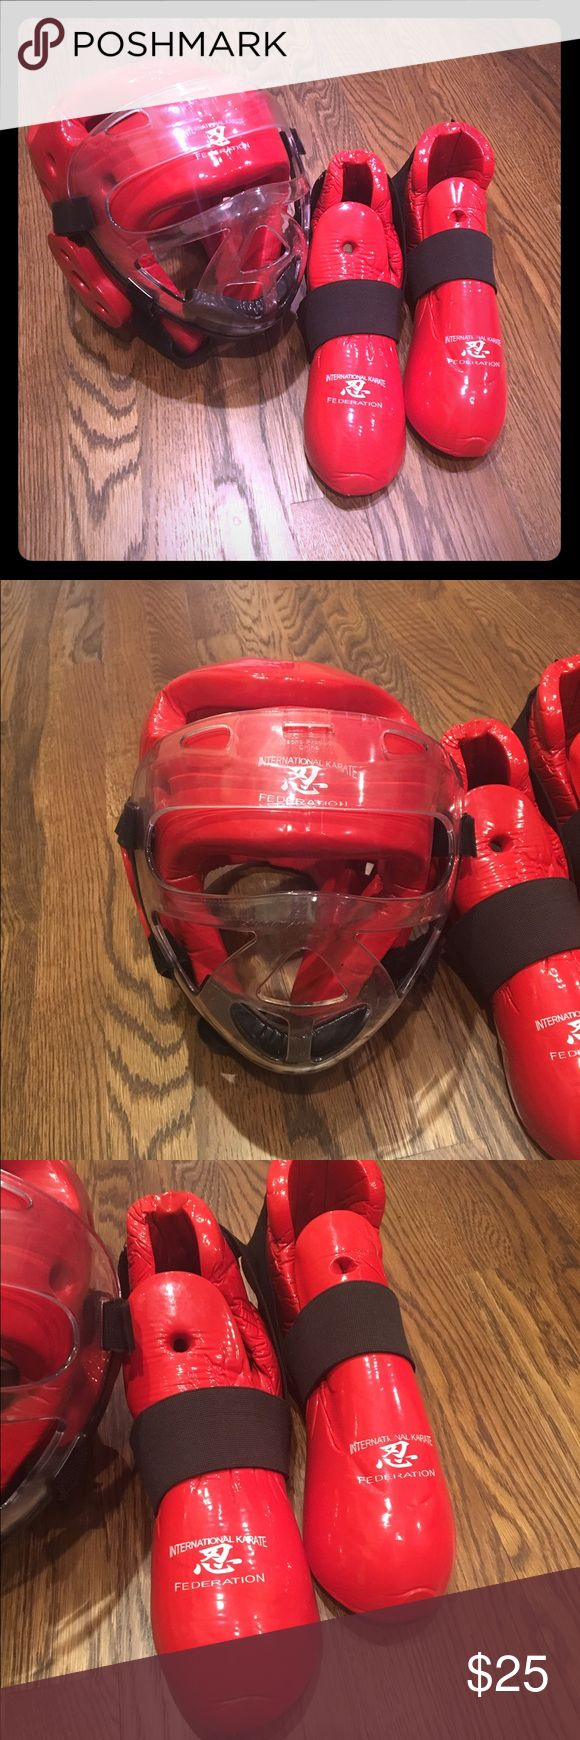 Karate Sparring Gear Karate Sparring Gear. Red. Head guard with removable face shield and foot covers. International Karate Federation. Adult or larger child. Other